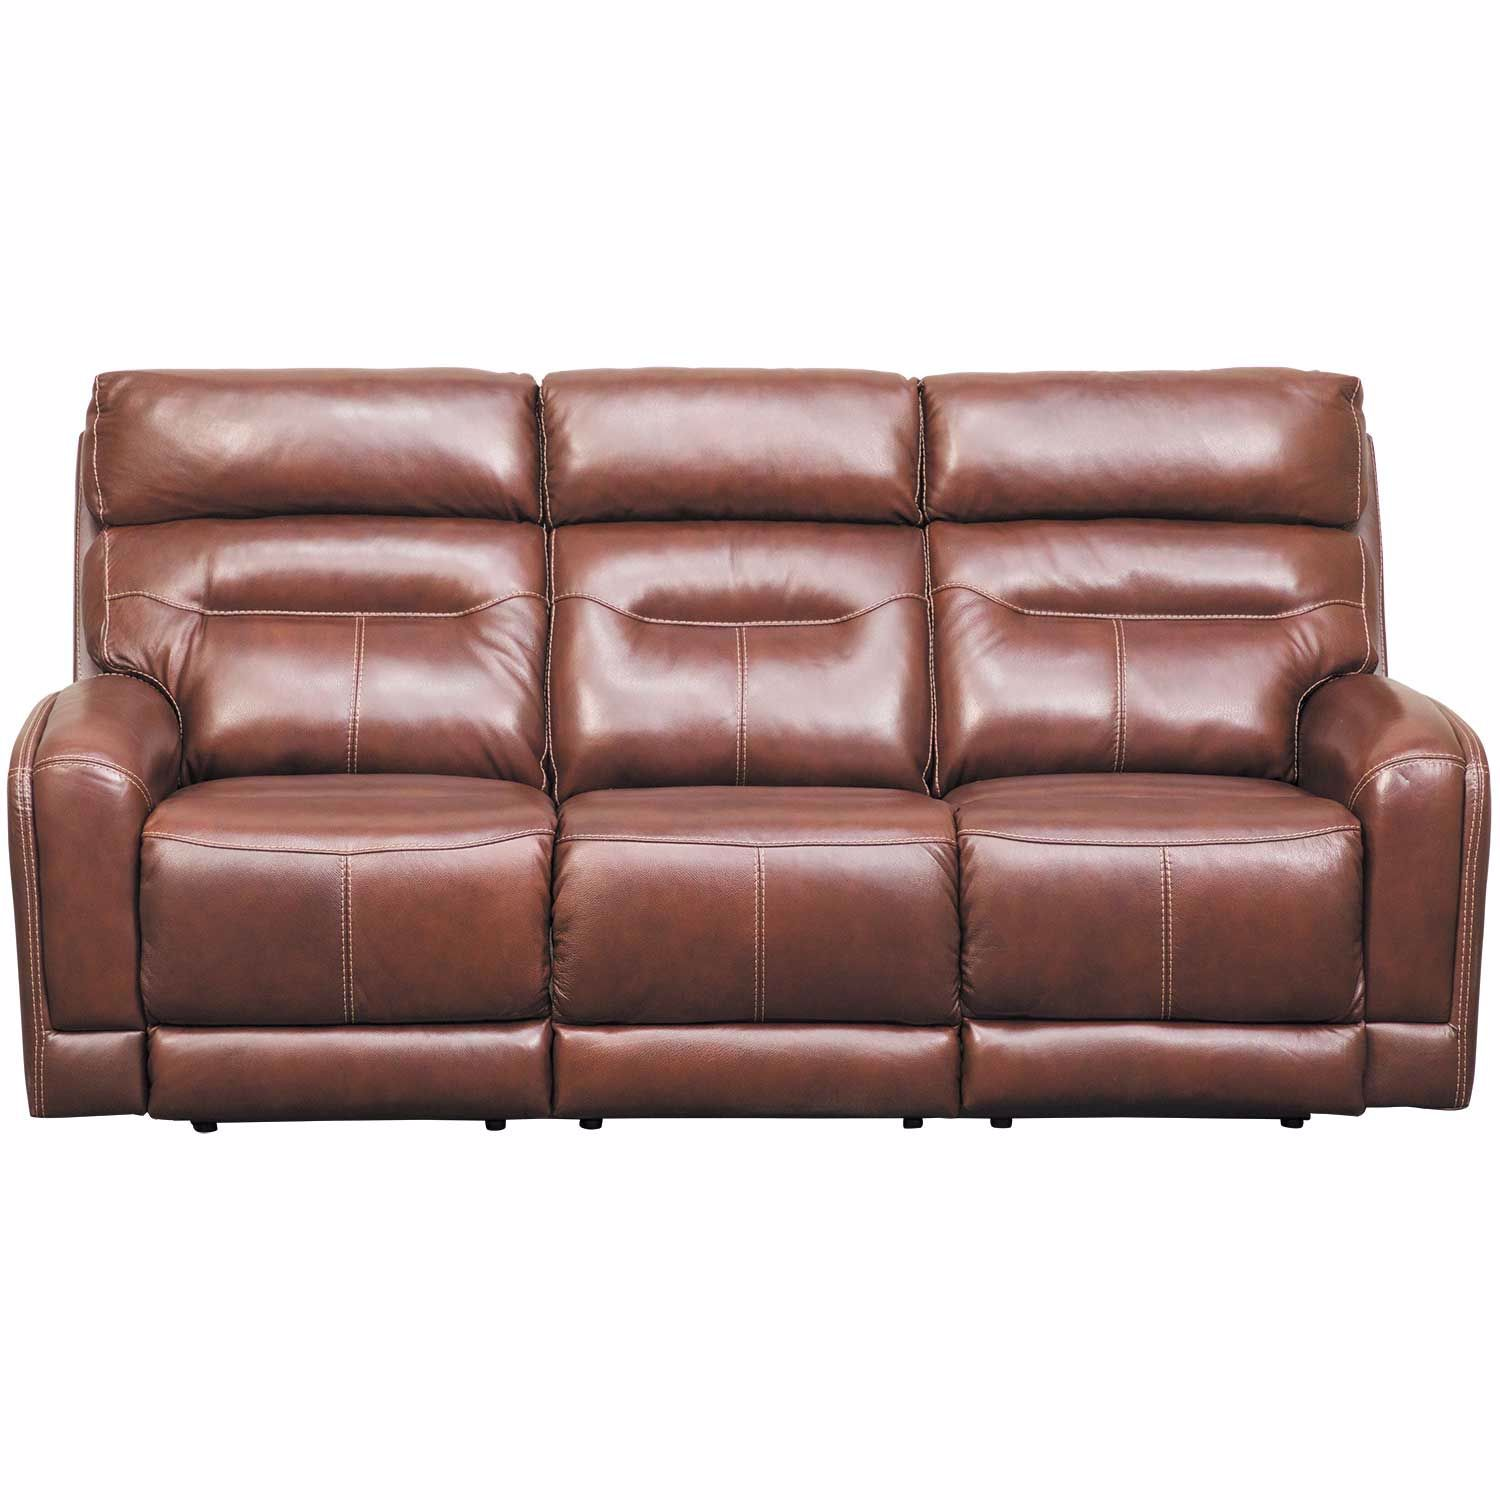 Sessom Leather Power Reclining Sofa with Adjustable Headrest and Lumbar  Support